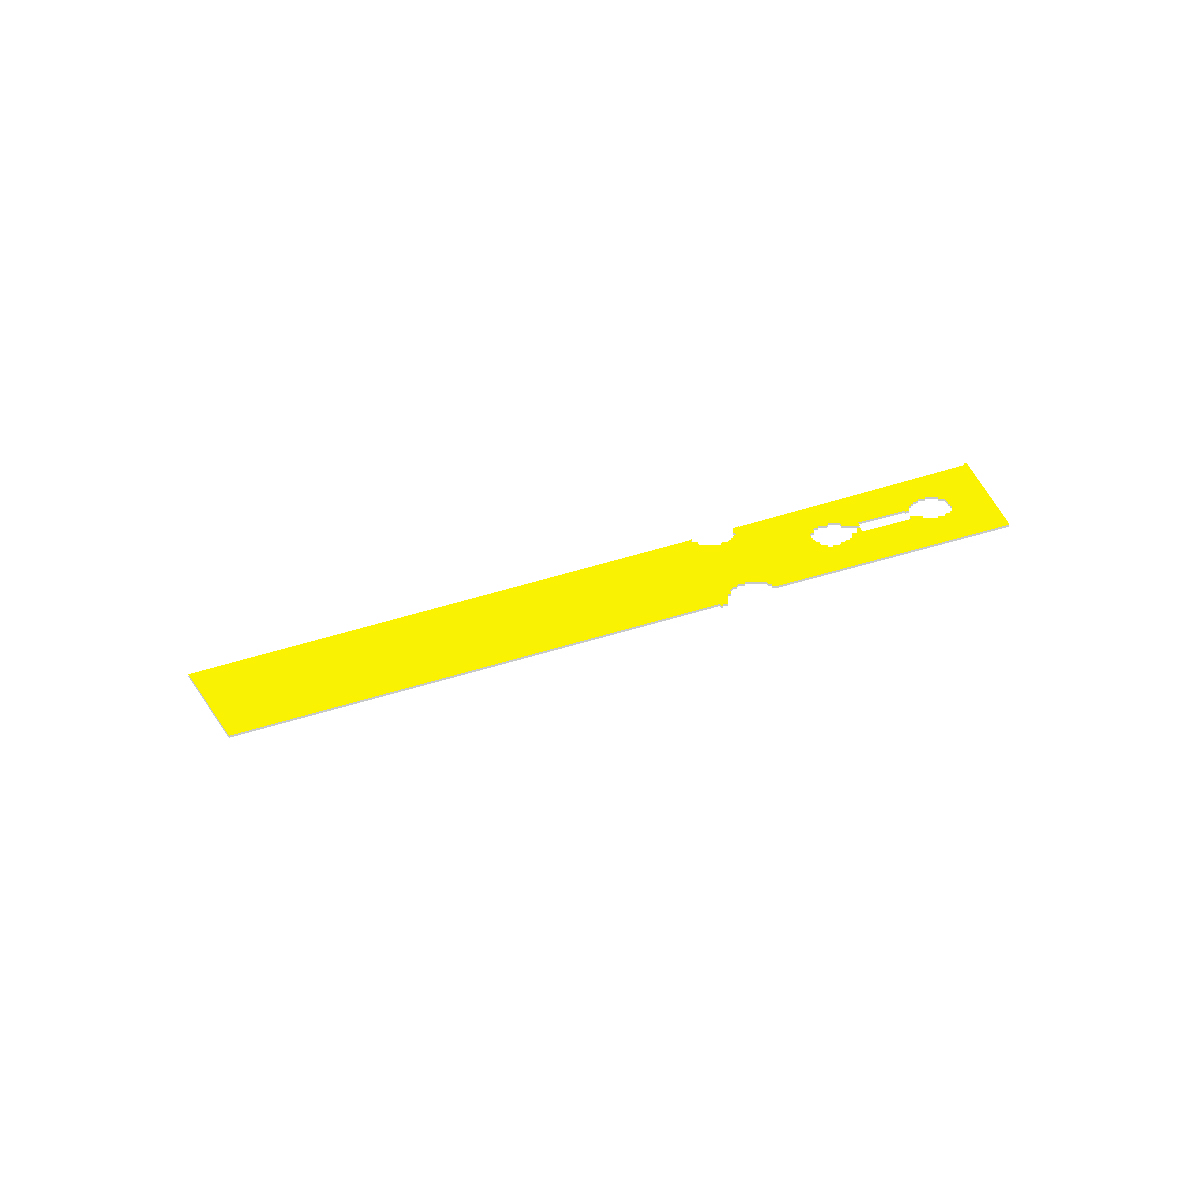 Yellow Washer Tag Image